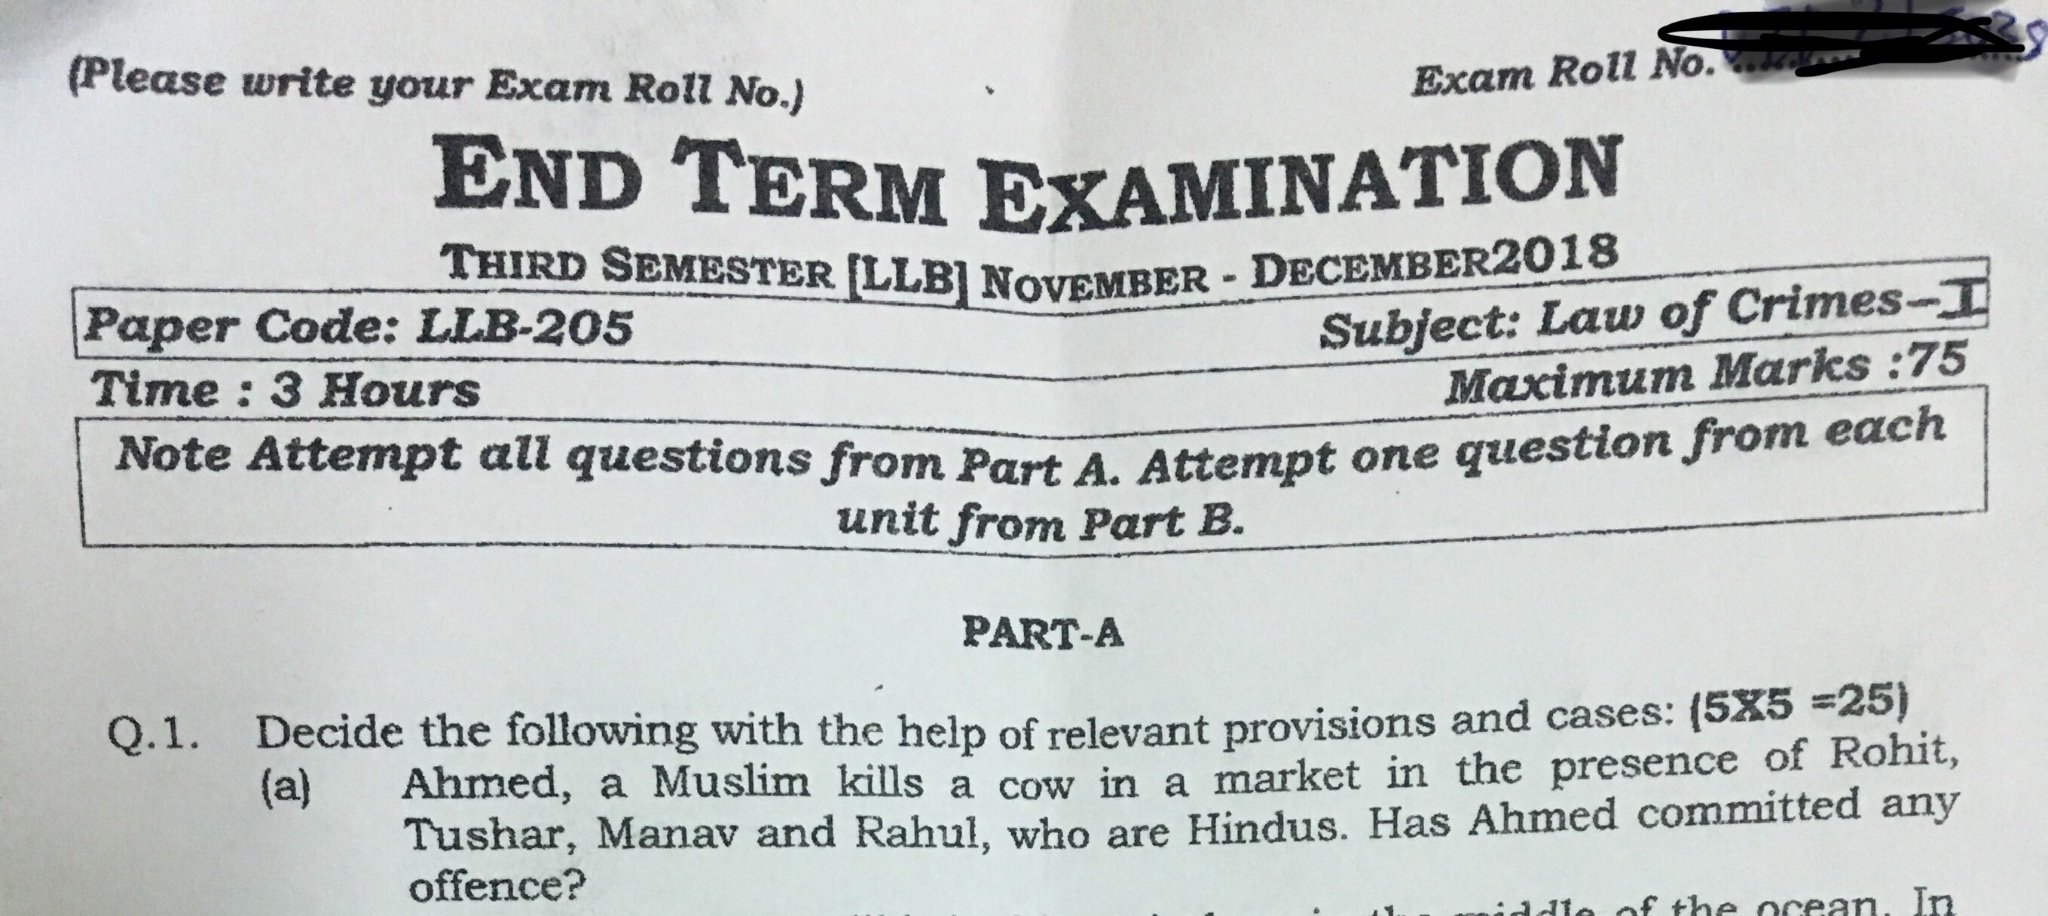 Communal Question about Cow Slaughter in Exam Paper sparks